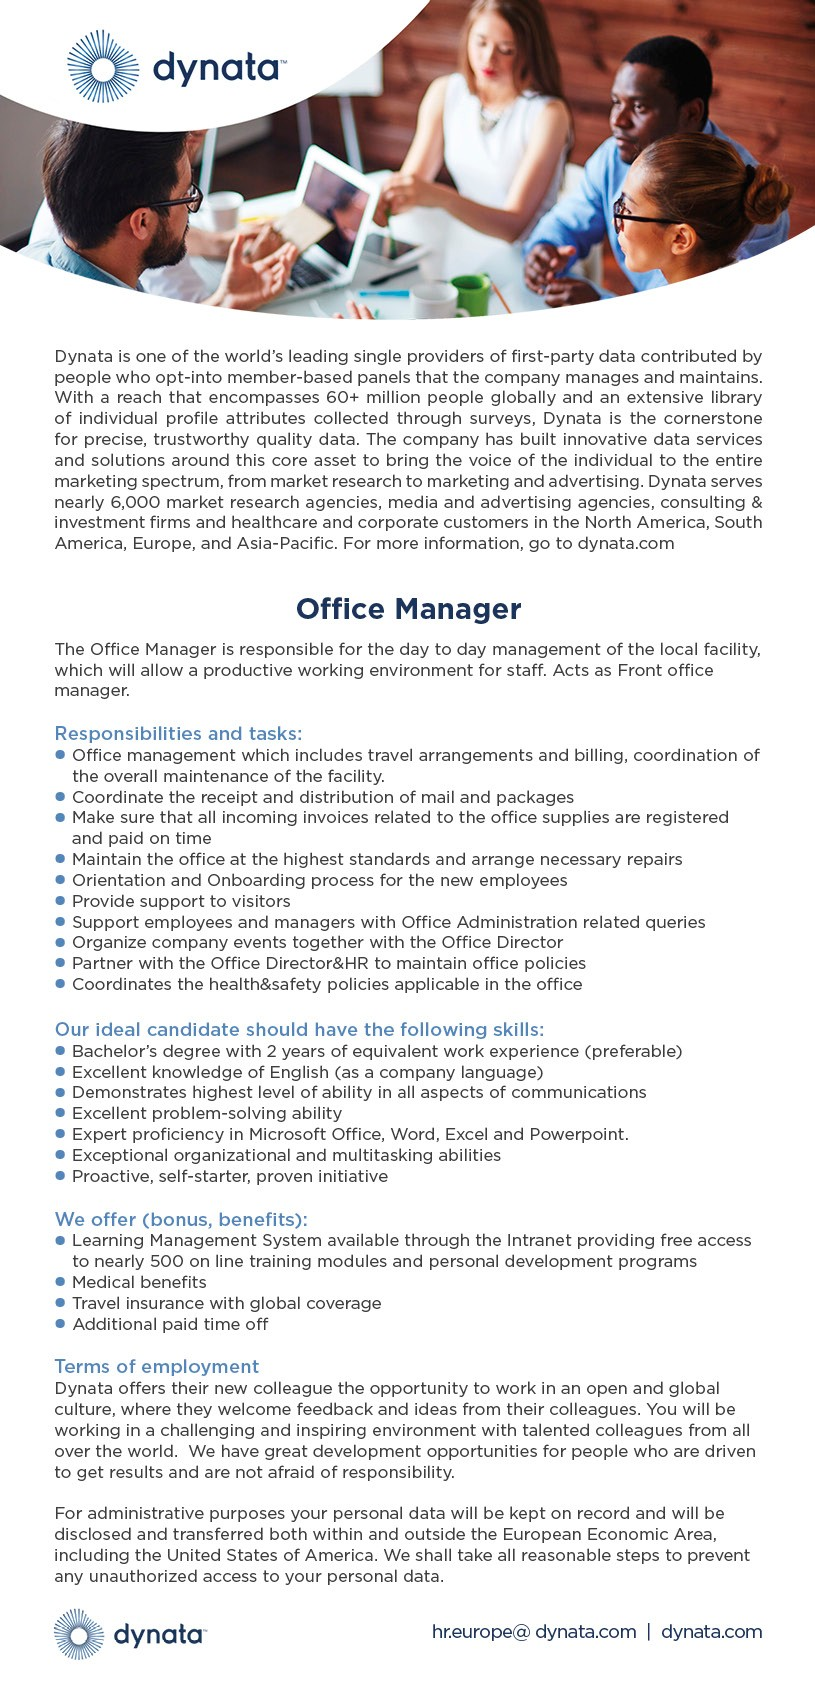 office_Manager